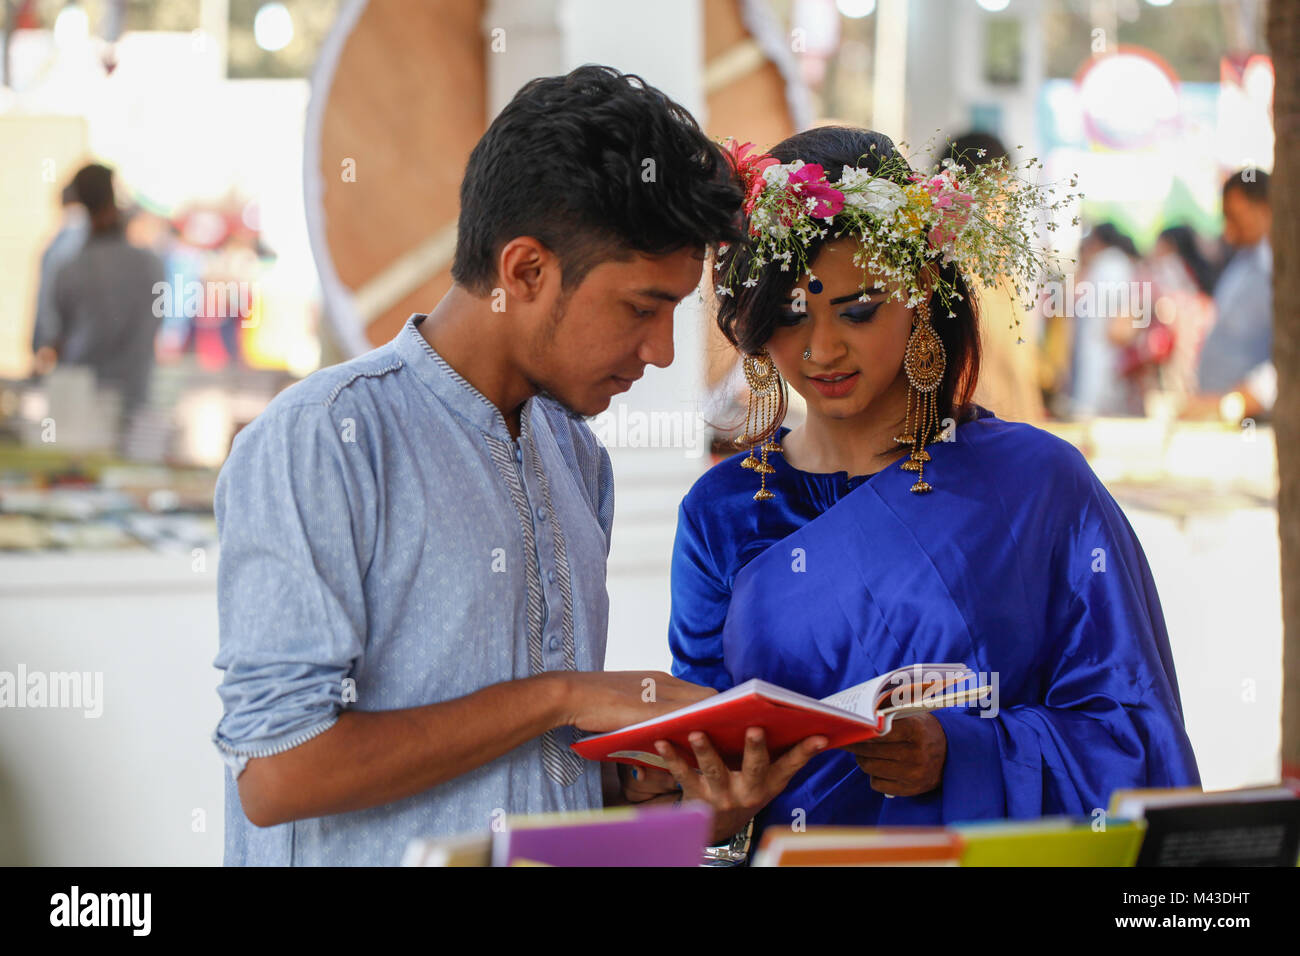 Dhaka bangladesh february 14 2018 bangladeshi couple in book fair to celebrate valentines day in dhaka on february 14 2018